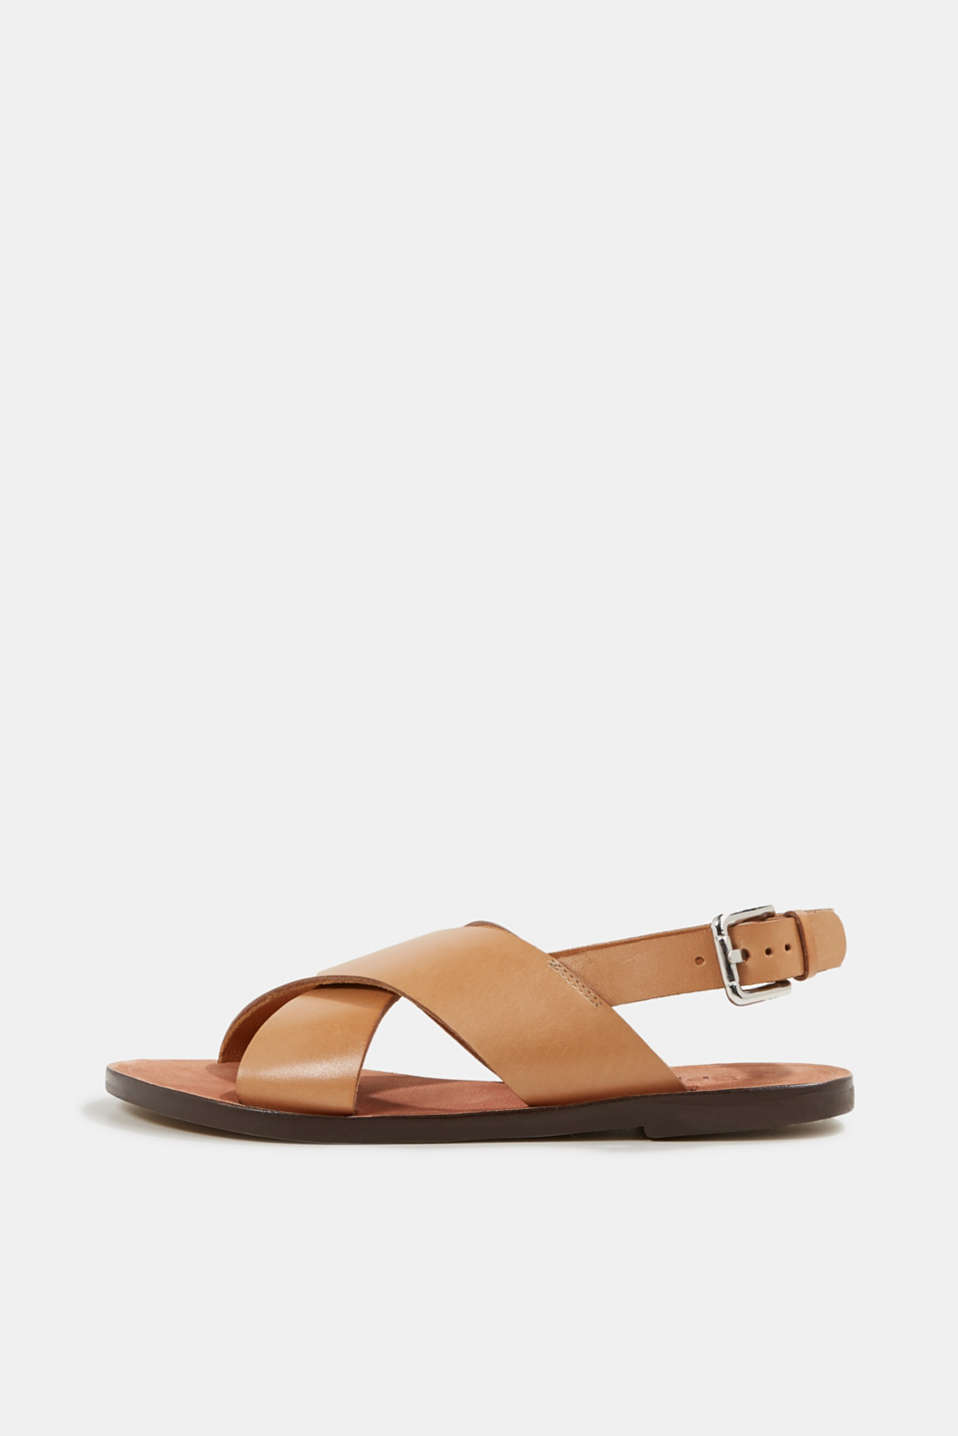 Esprit - Made of leather: strap sandals